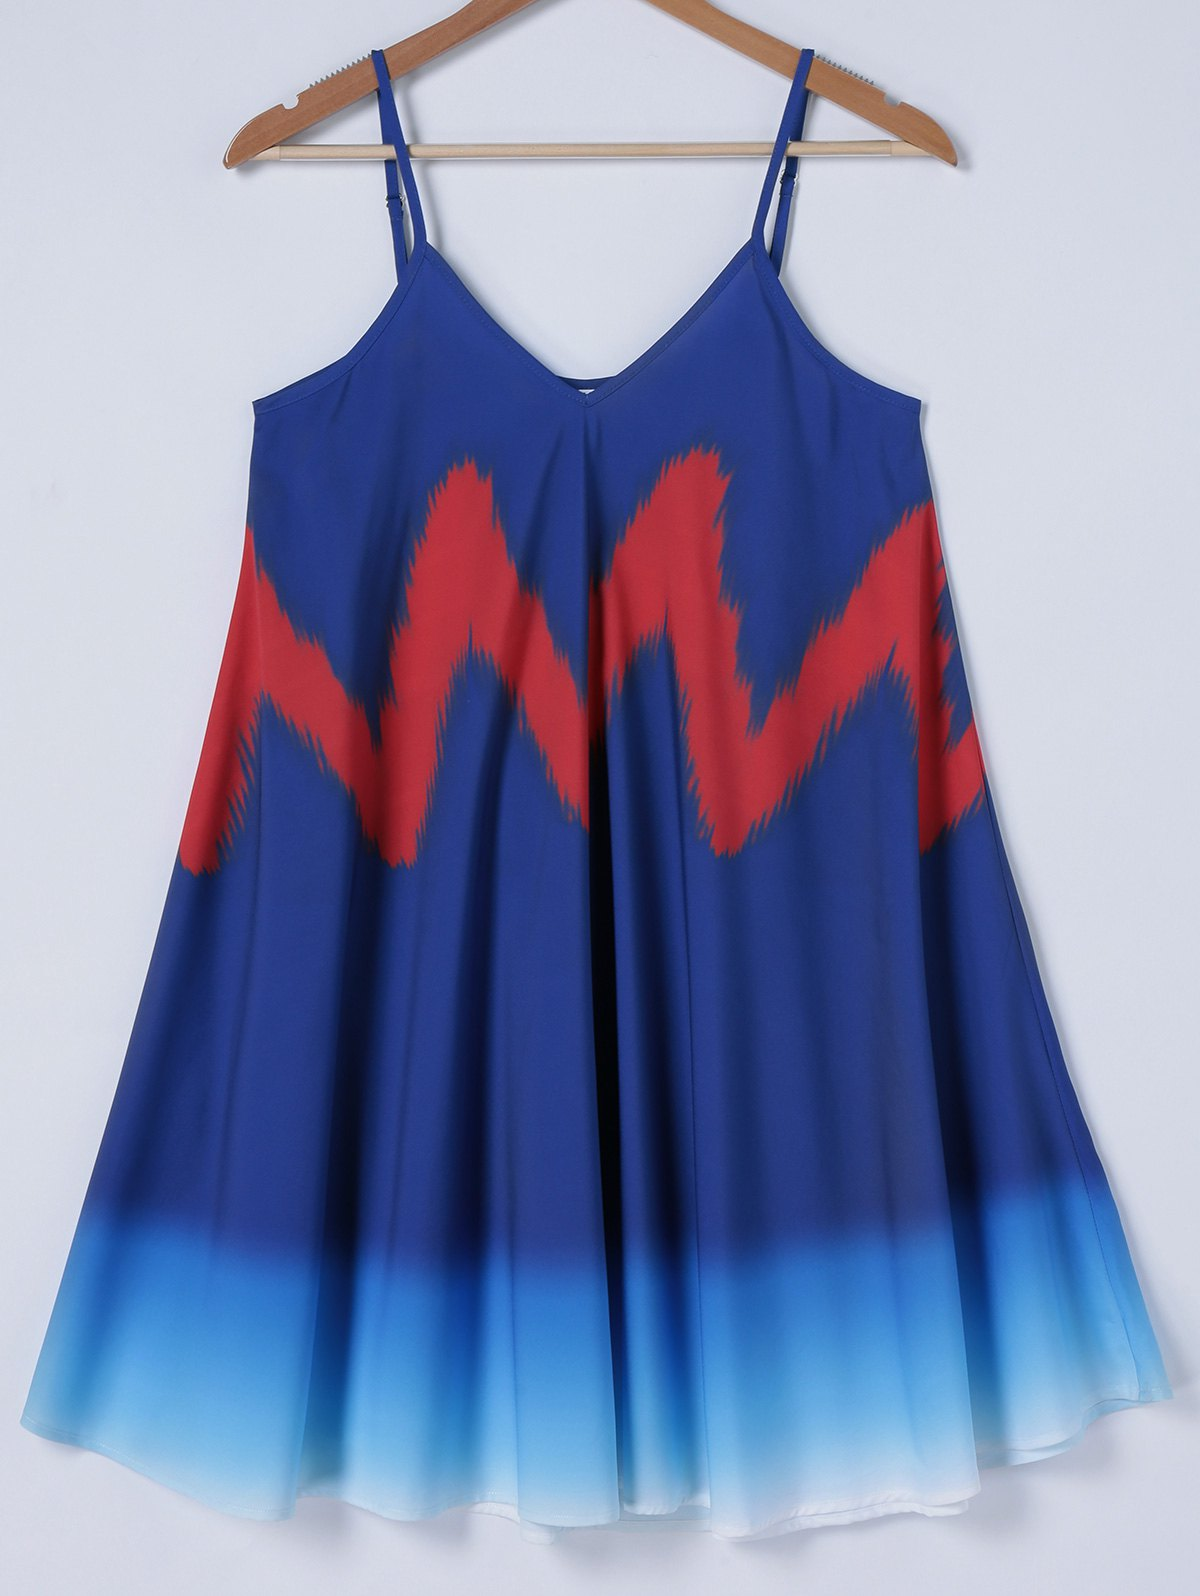 Tie-Dye Ombre Pleated Summer Dress - BLUE/RED XL